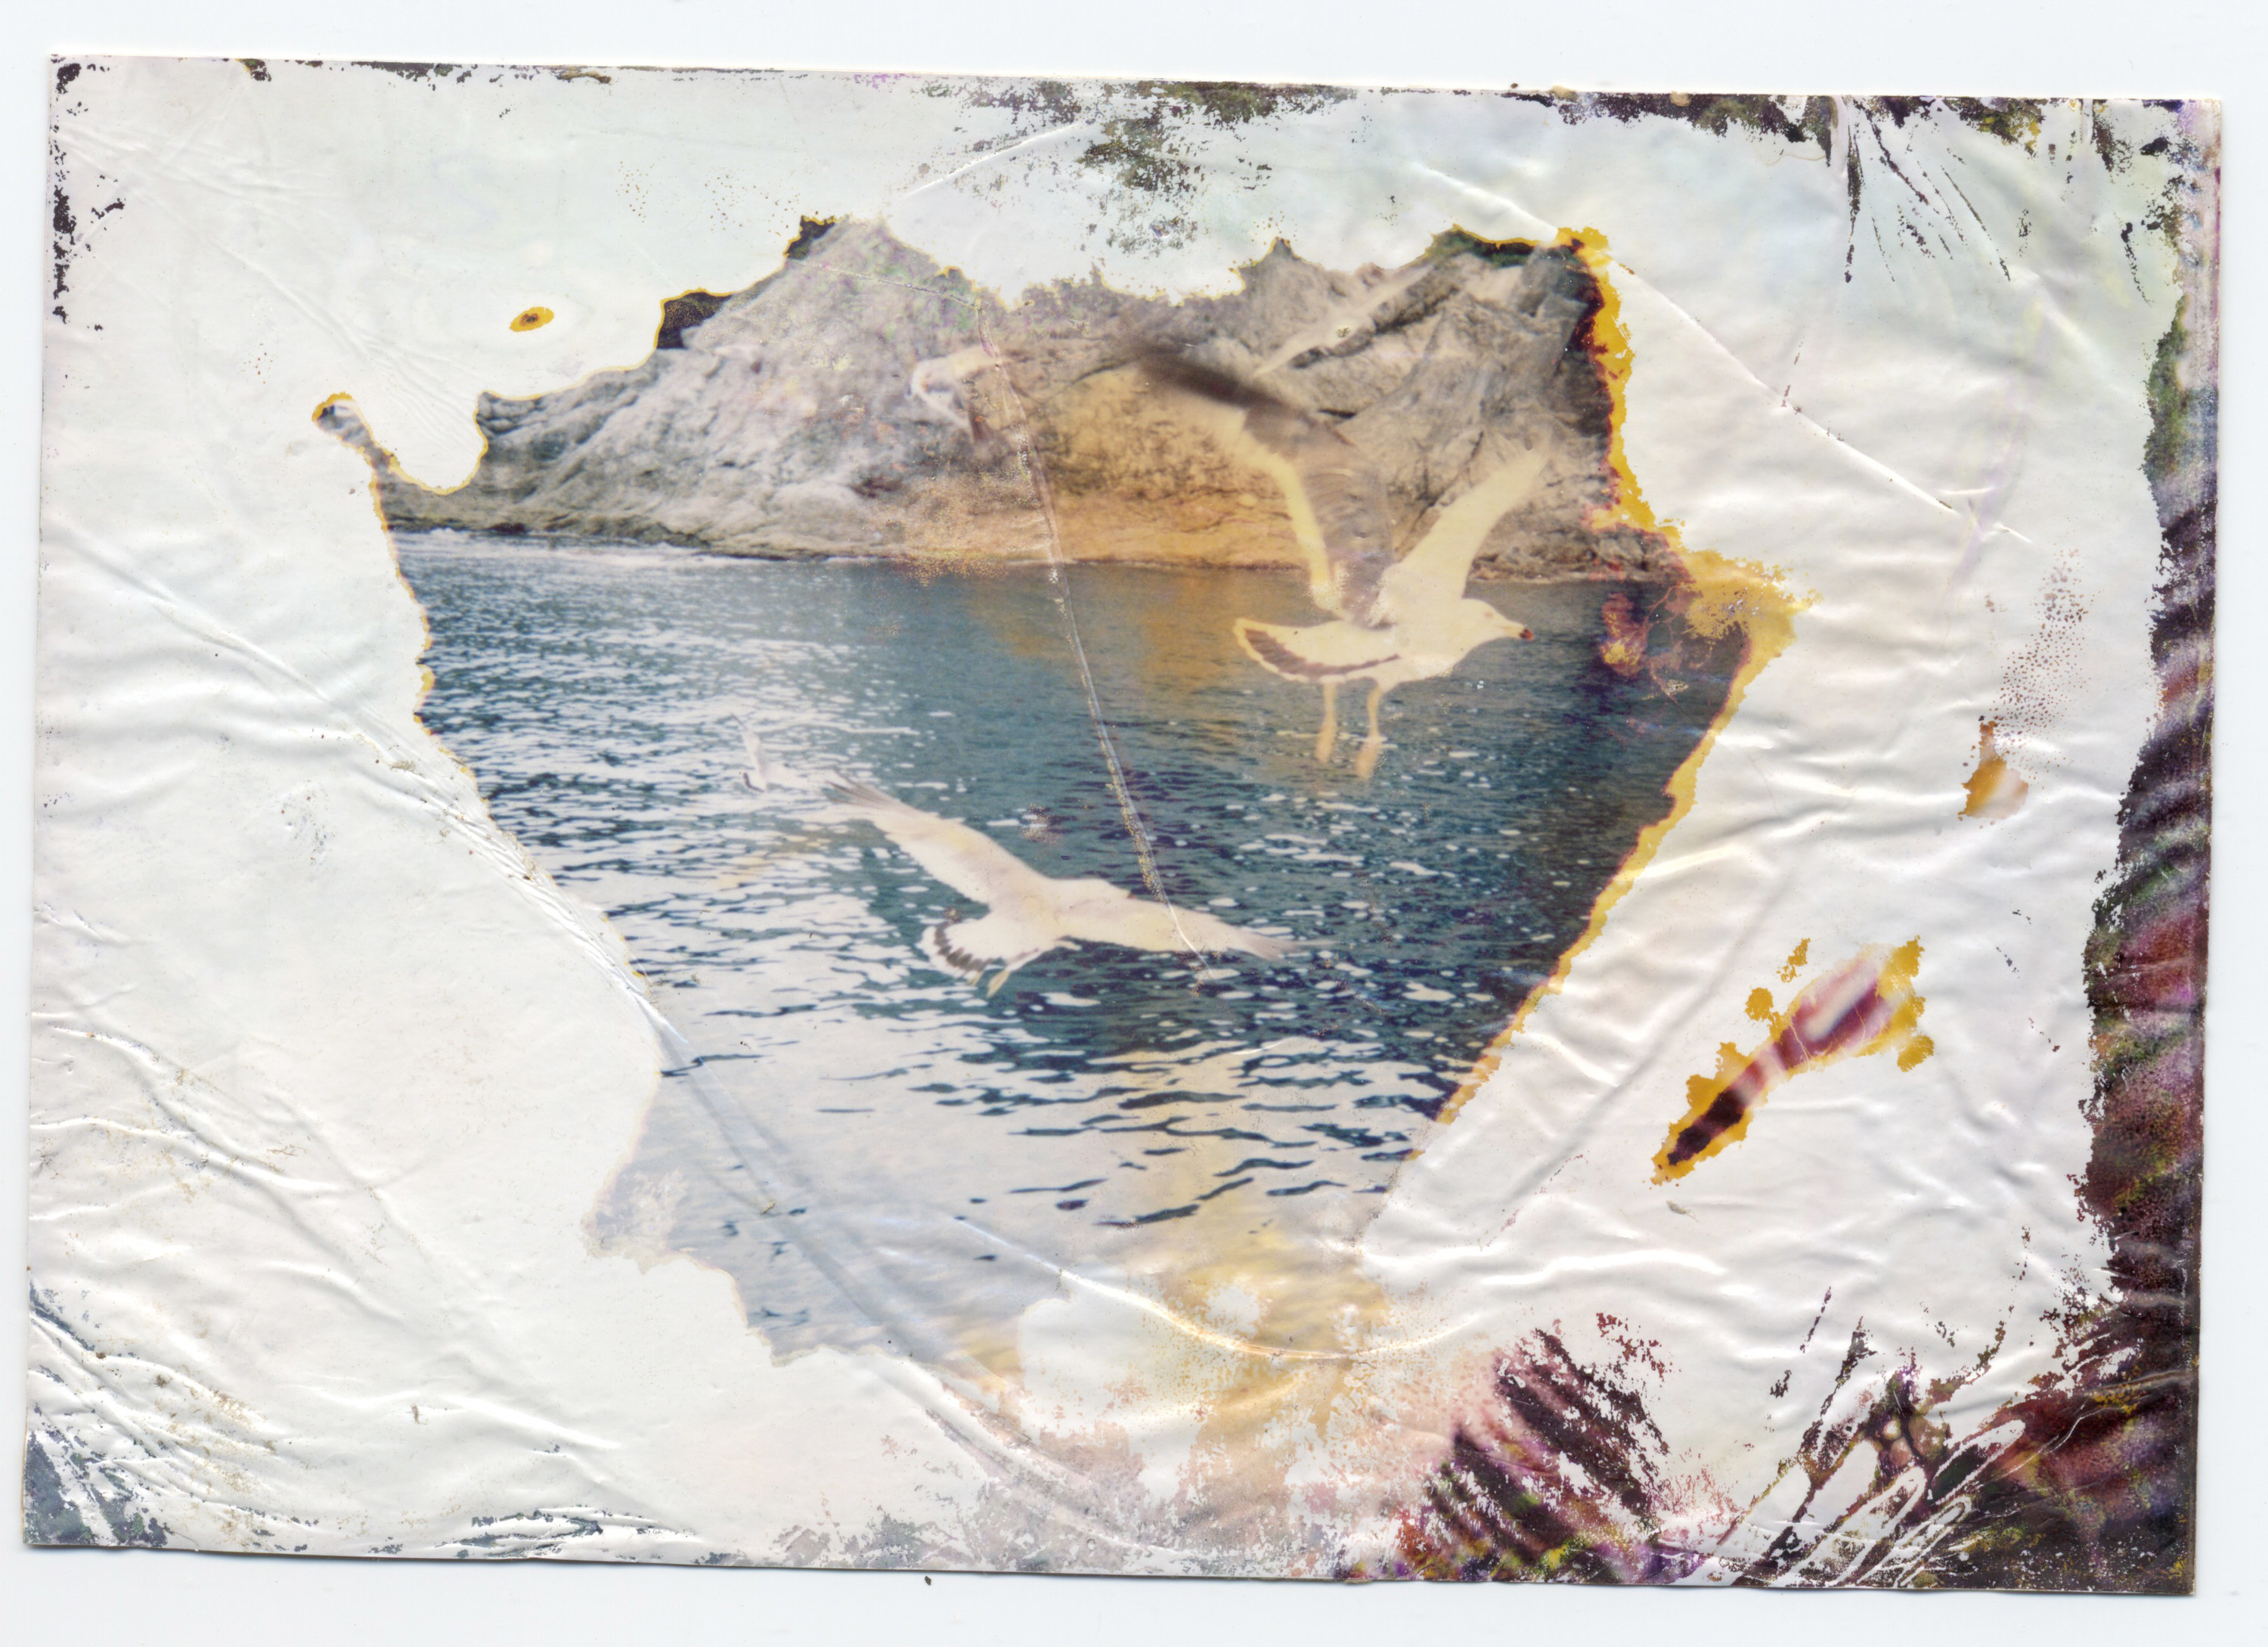 a damaged photograph of two seagulls flying over a body of water